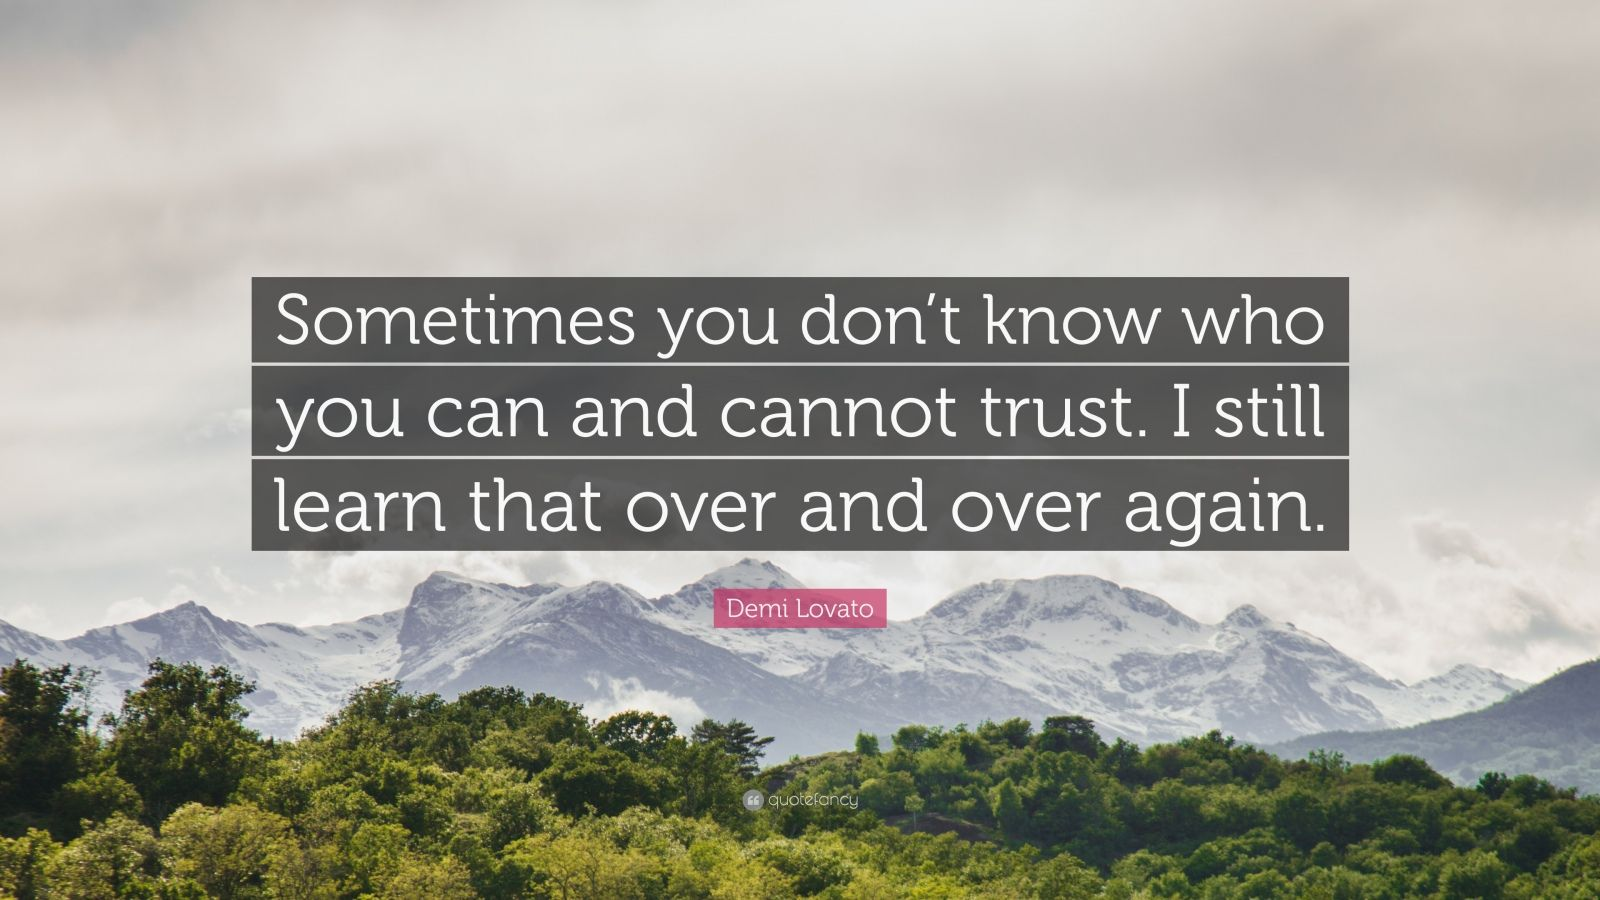 """Demi Lovato Quote: """"Sometimes you don't know who you can and cannot trust. I still learn that over and over again."""""""